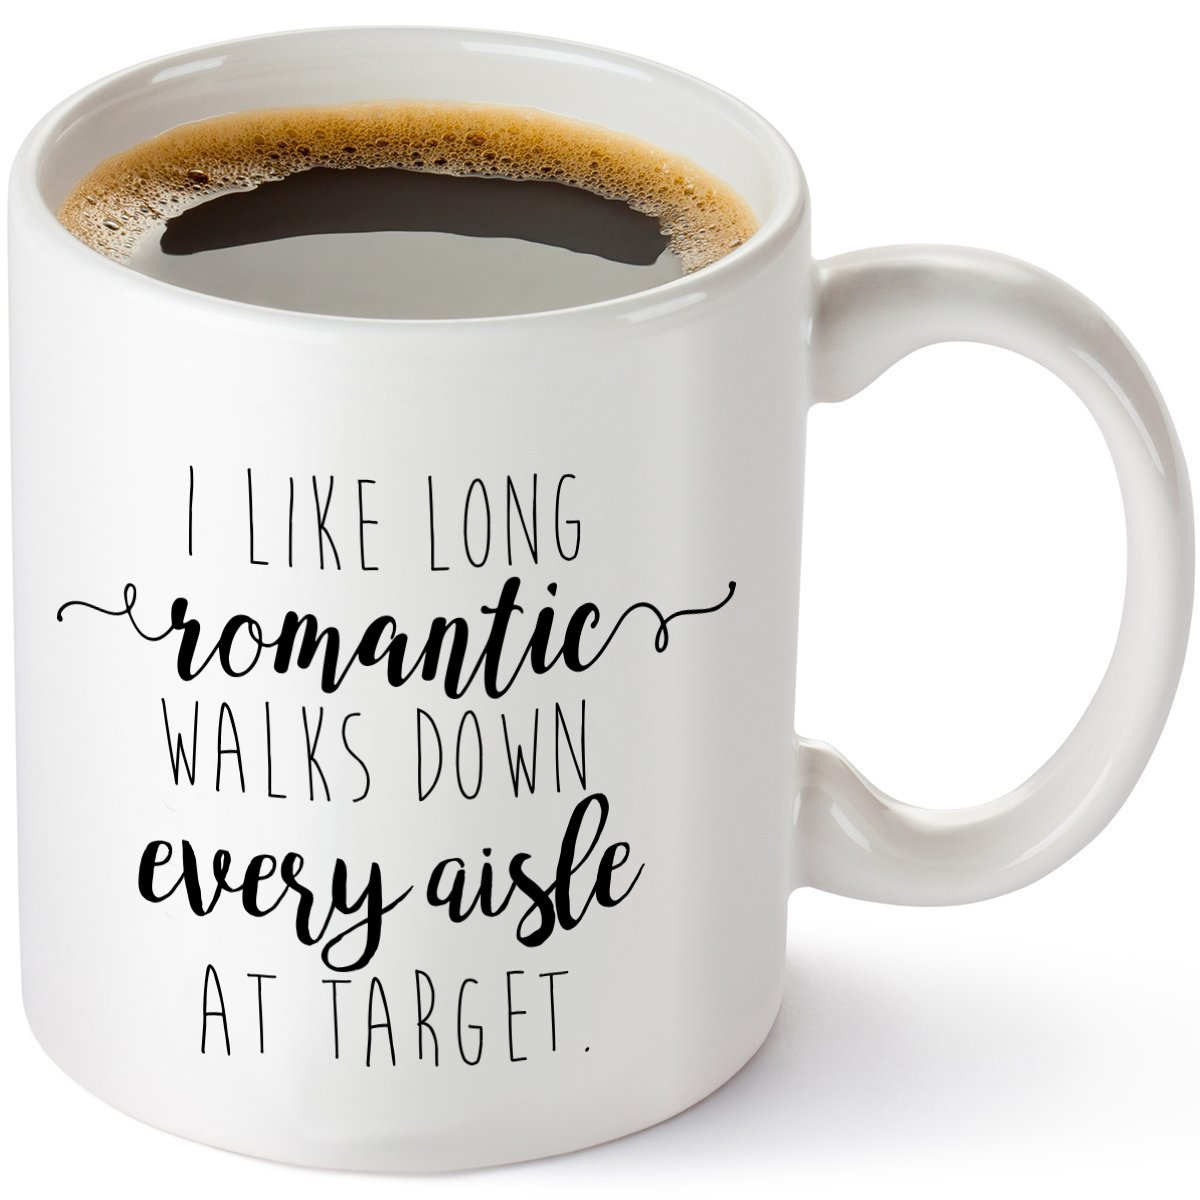 I Like Long Romantic Walks at Target Funny Coffee Mug 11oz - Unique Idea for Her, Mom, Wife, Girlfriend, Sister, Grandmother, Aunt for Women